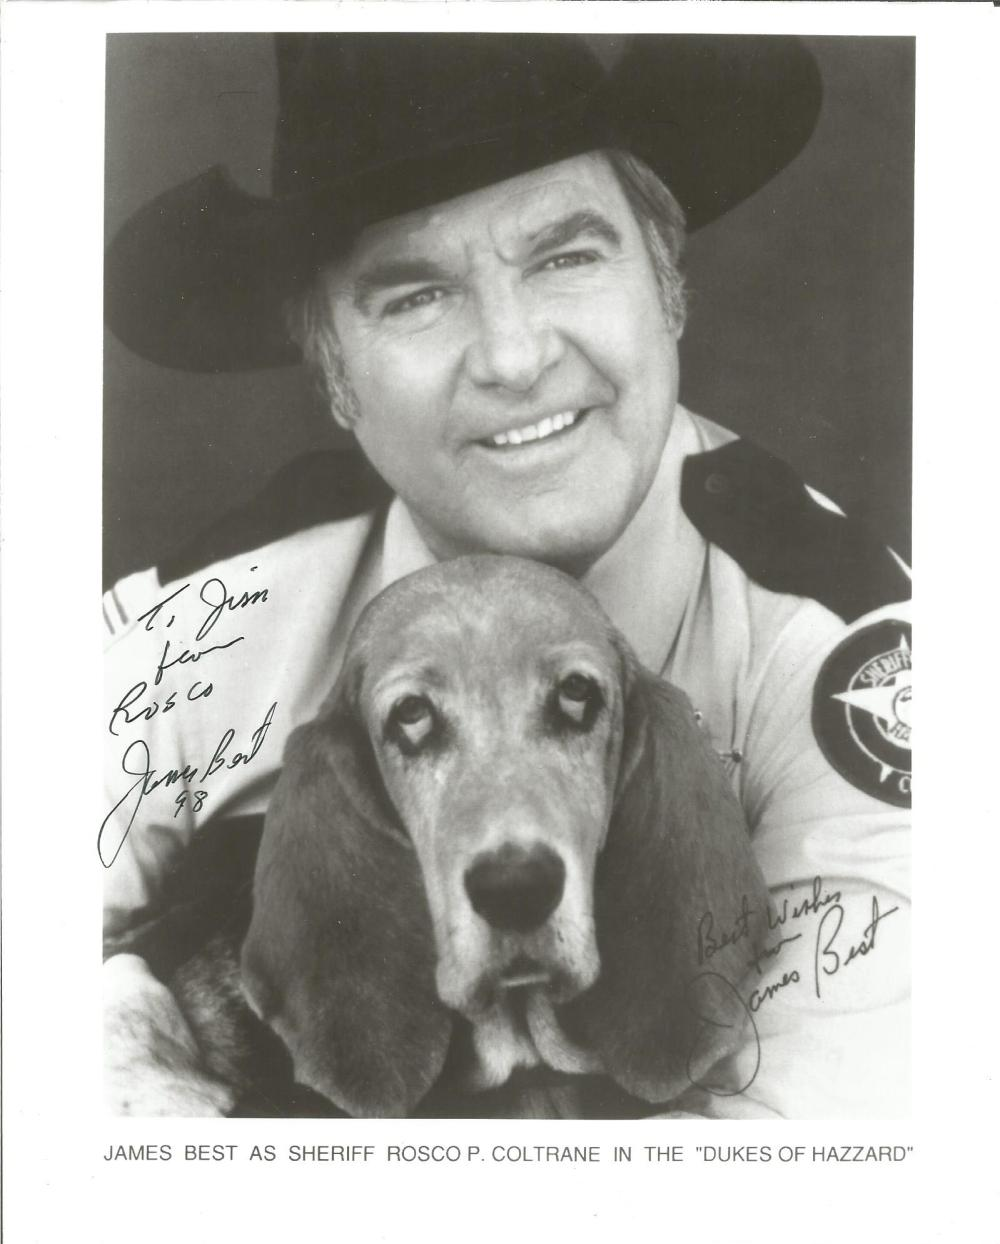 James Best signed 10x8 b/w photo from Dukes of Hazard photo. (July 26, 1926 - April 6, 2015), was an